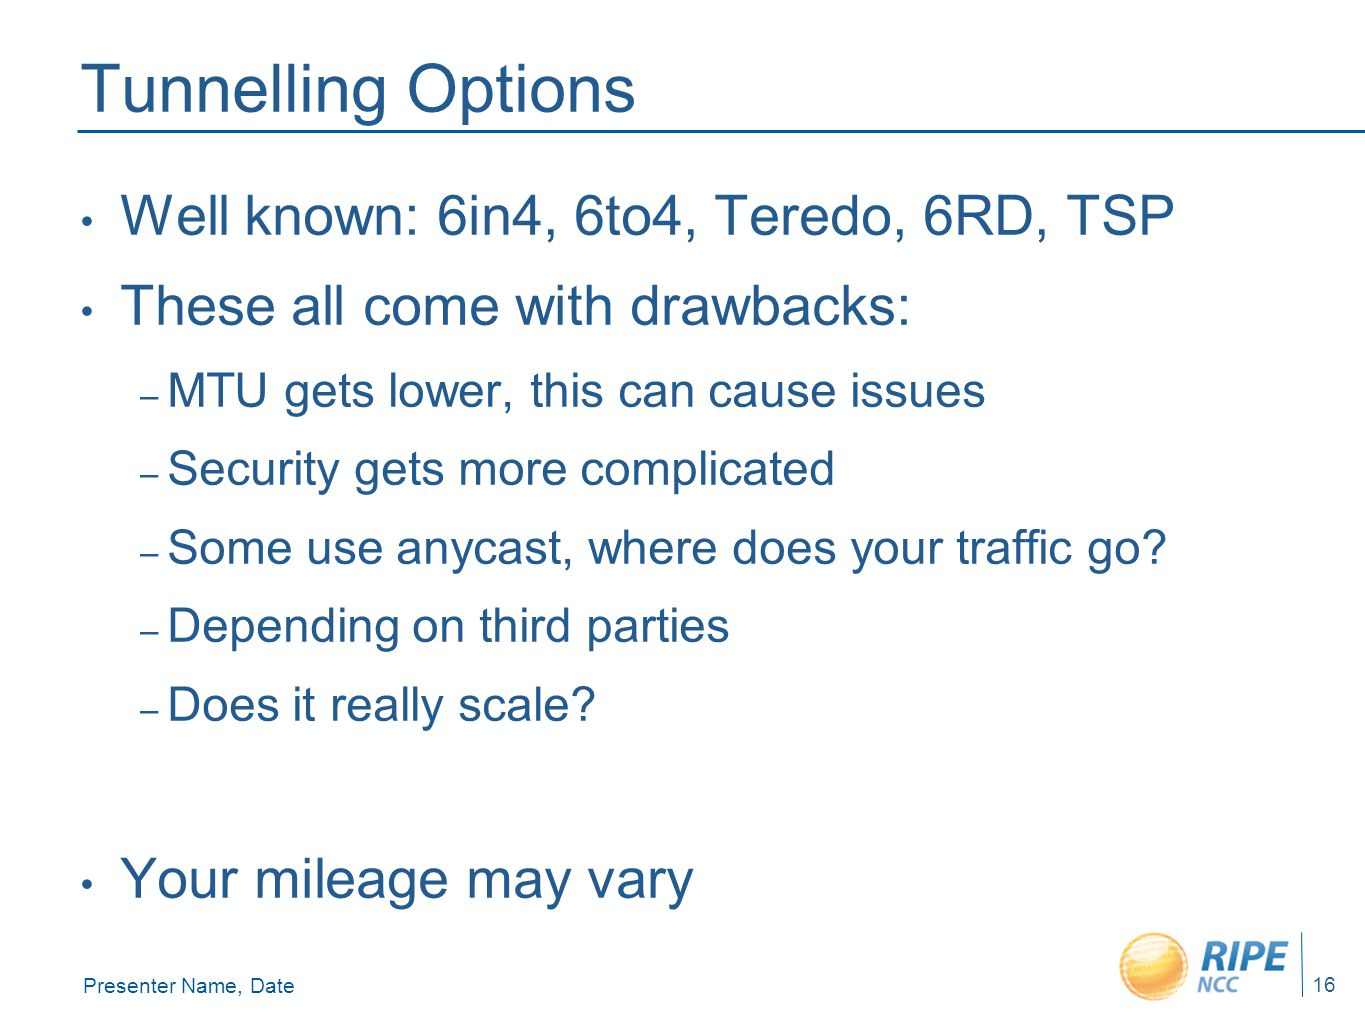 Presenter Name, Date 16 Tunnelling Options Well known: 6in4, 6to4, Teredo, 6RD, TSP These all come with drawbacks: – MTU gets lower, this can cause issues – Security gets more complicated – Some use anycast, where does your traffic go.